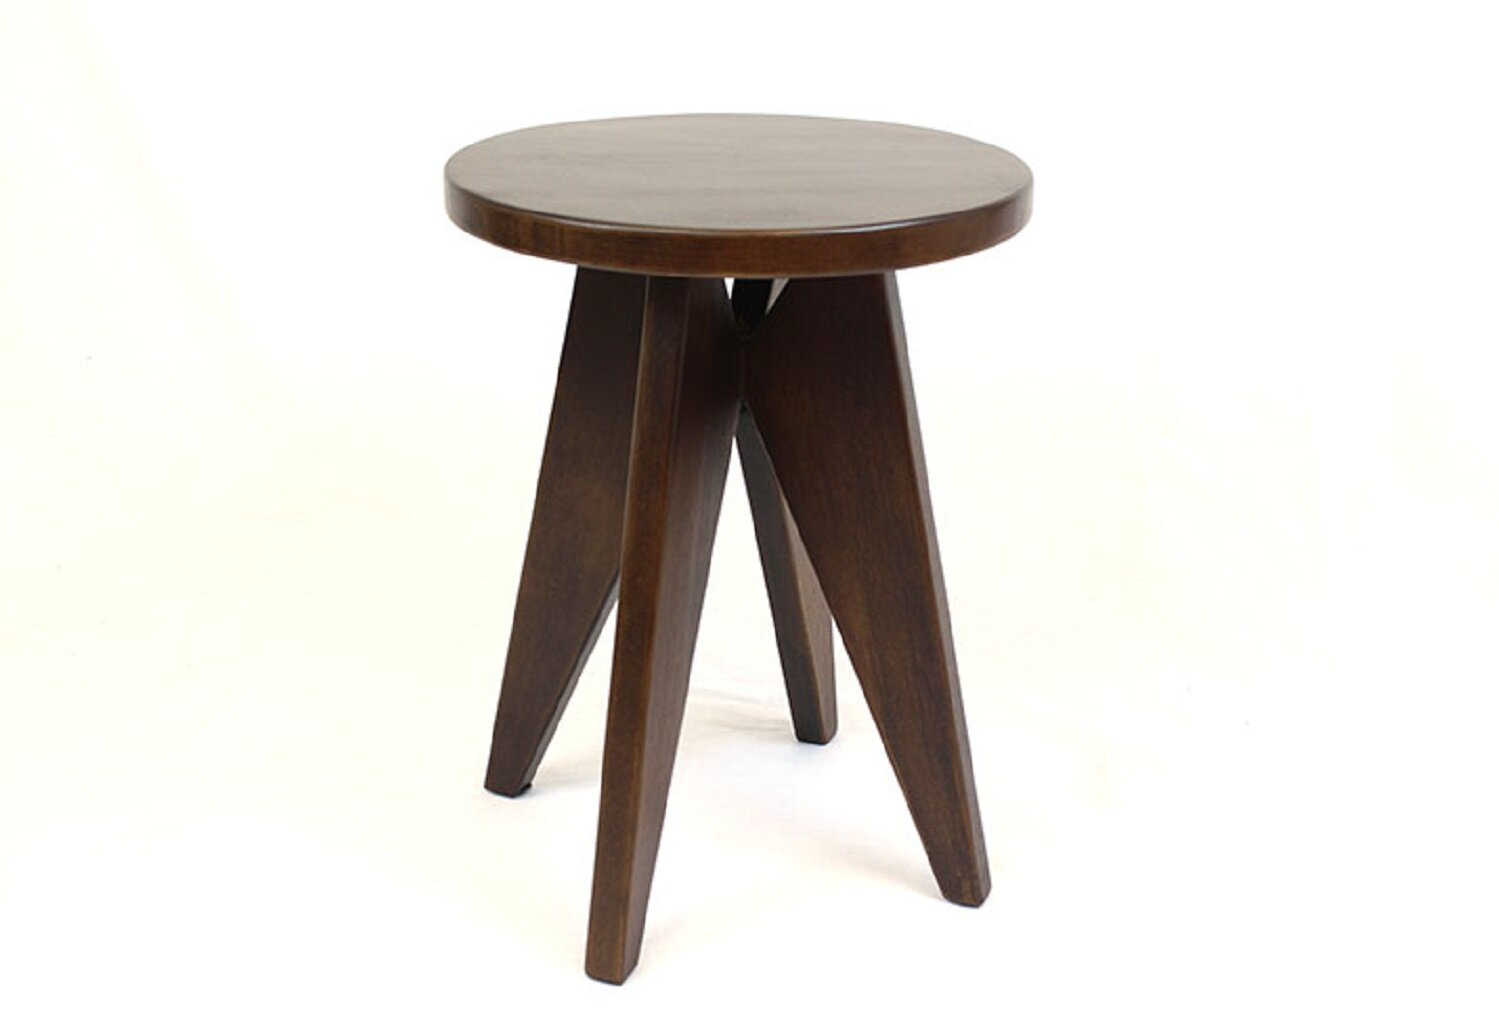 Miraculous Seager Wood Accent Stool Caraccident5 Cool Chair Designs And Ideas Caraccident5Info